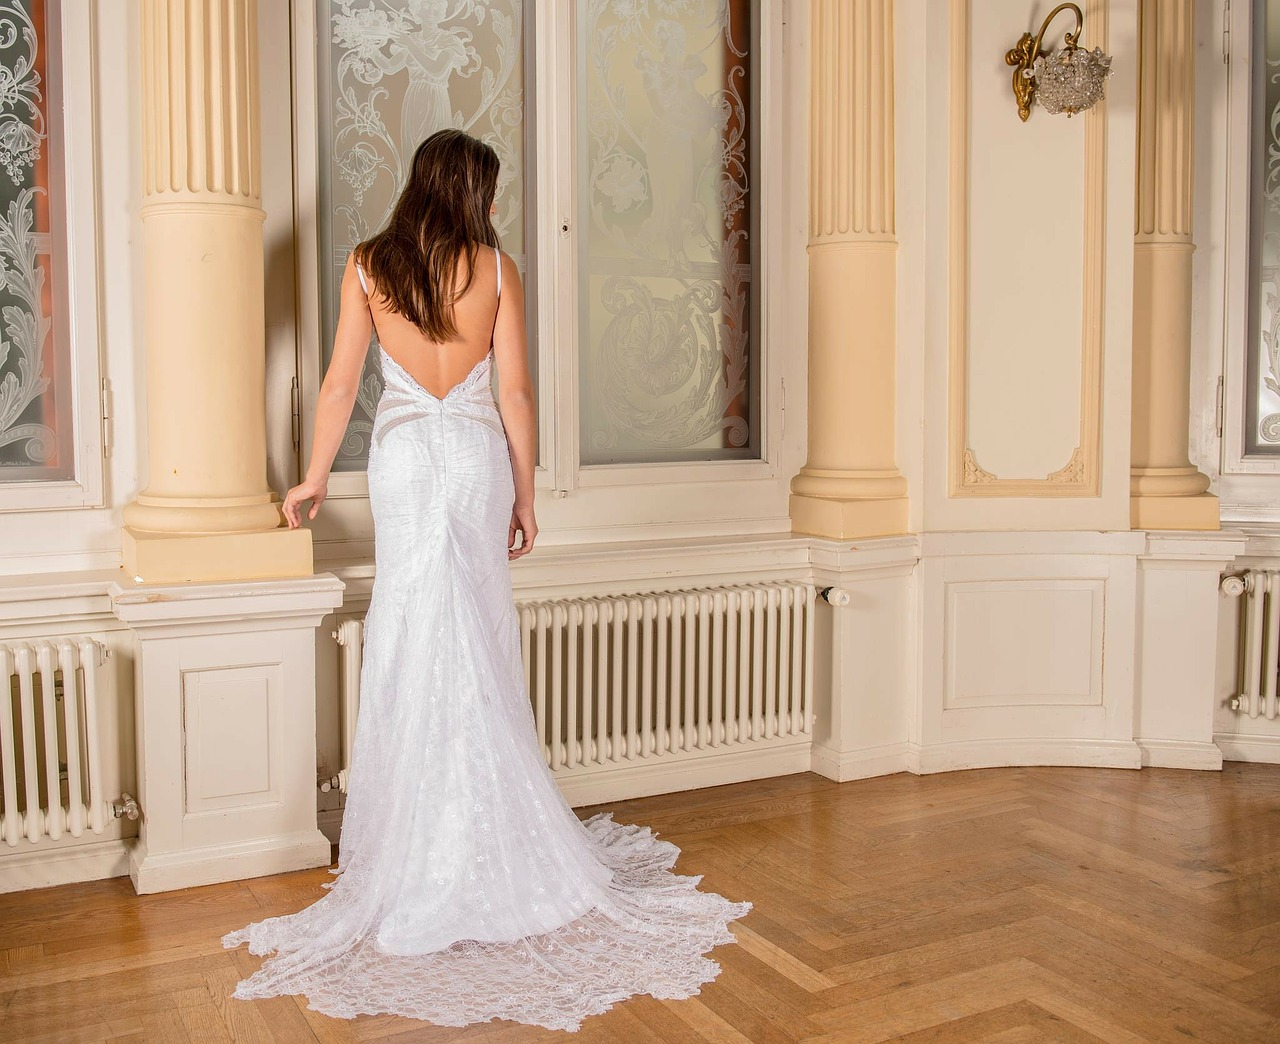 wedding-dress-301815_1280